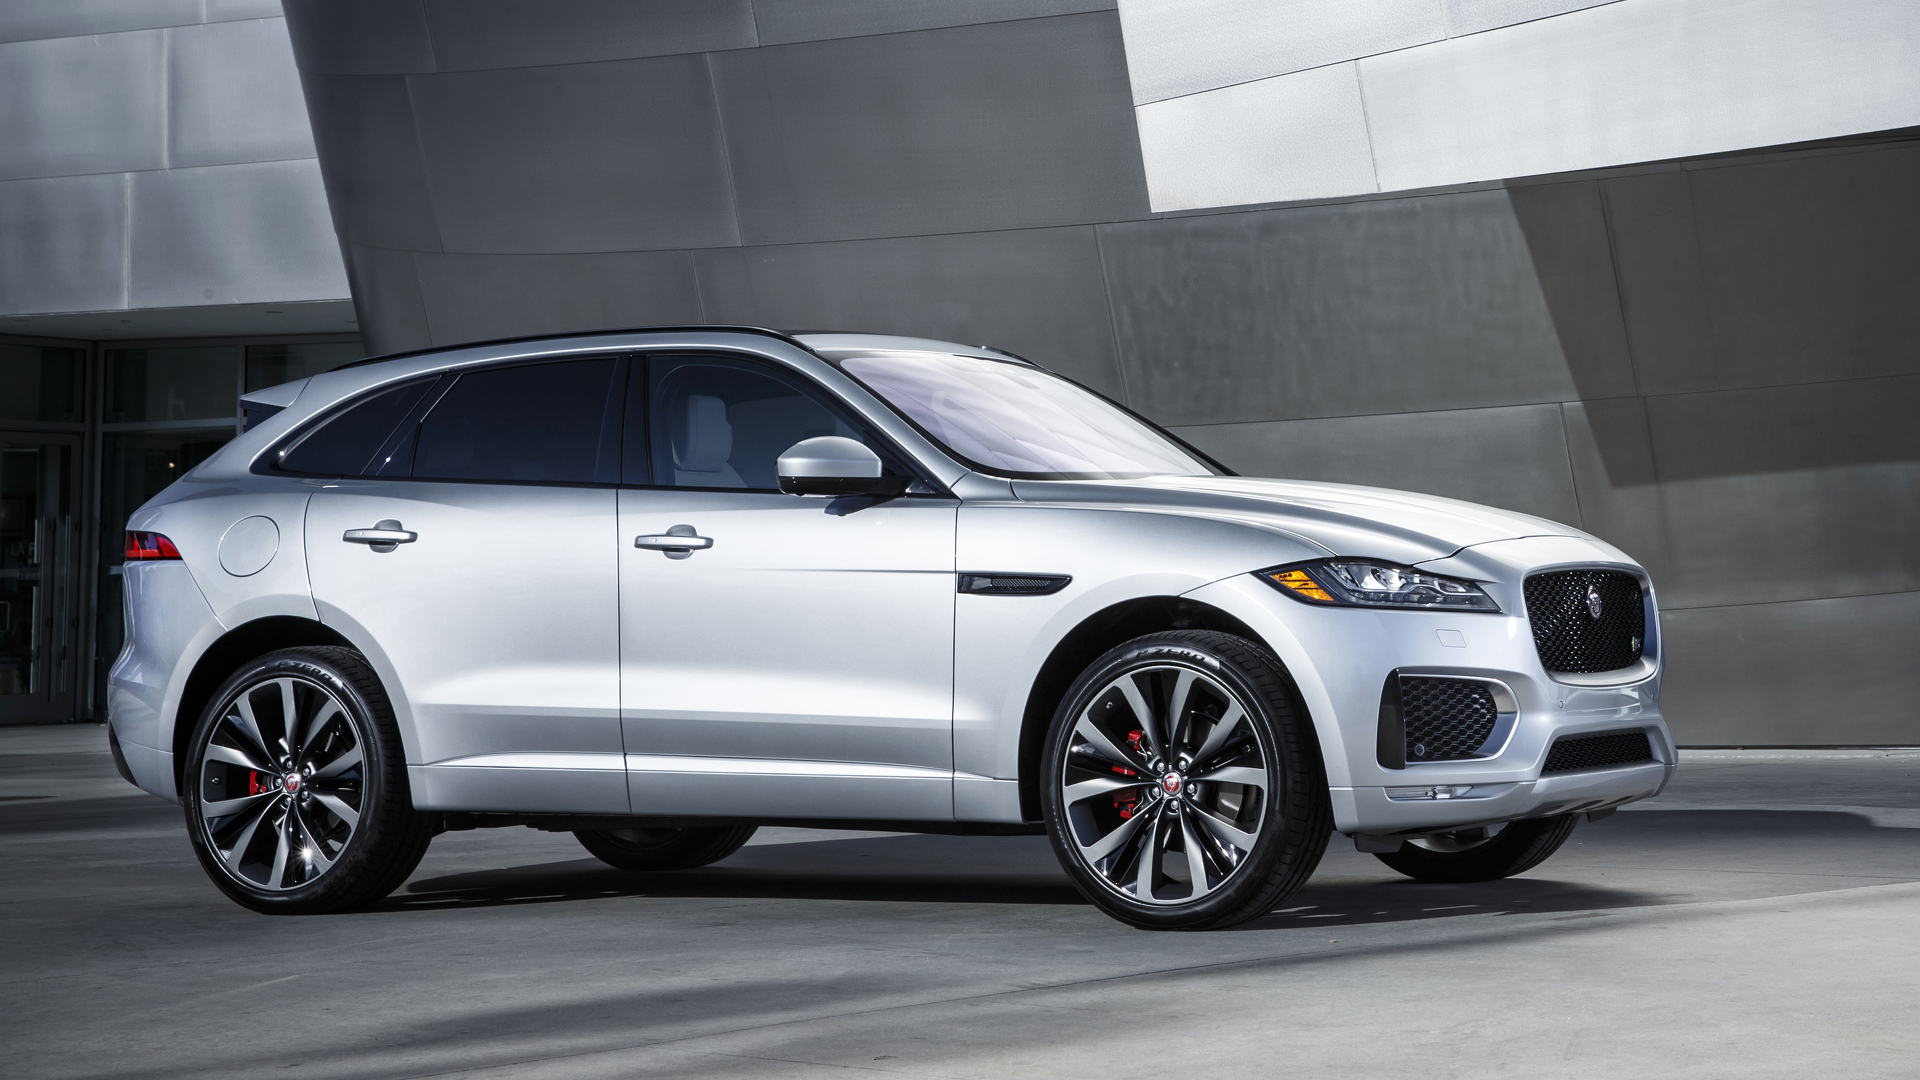 Jaguar F-Pace 2017 model year will be available soon 66